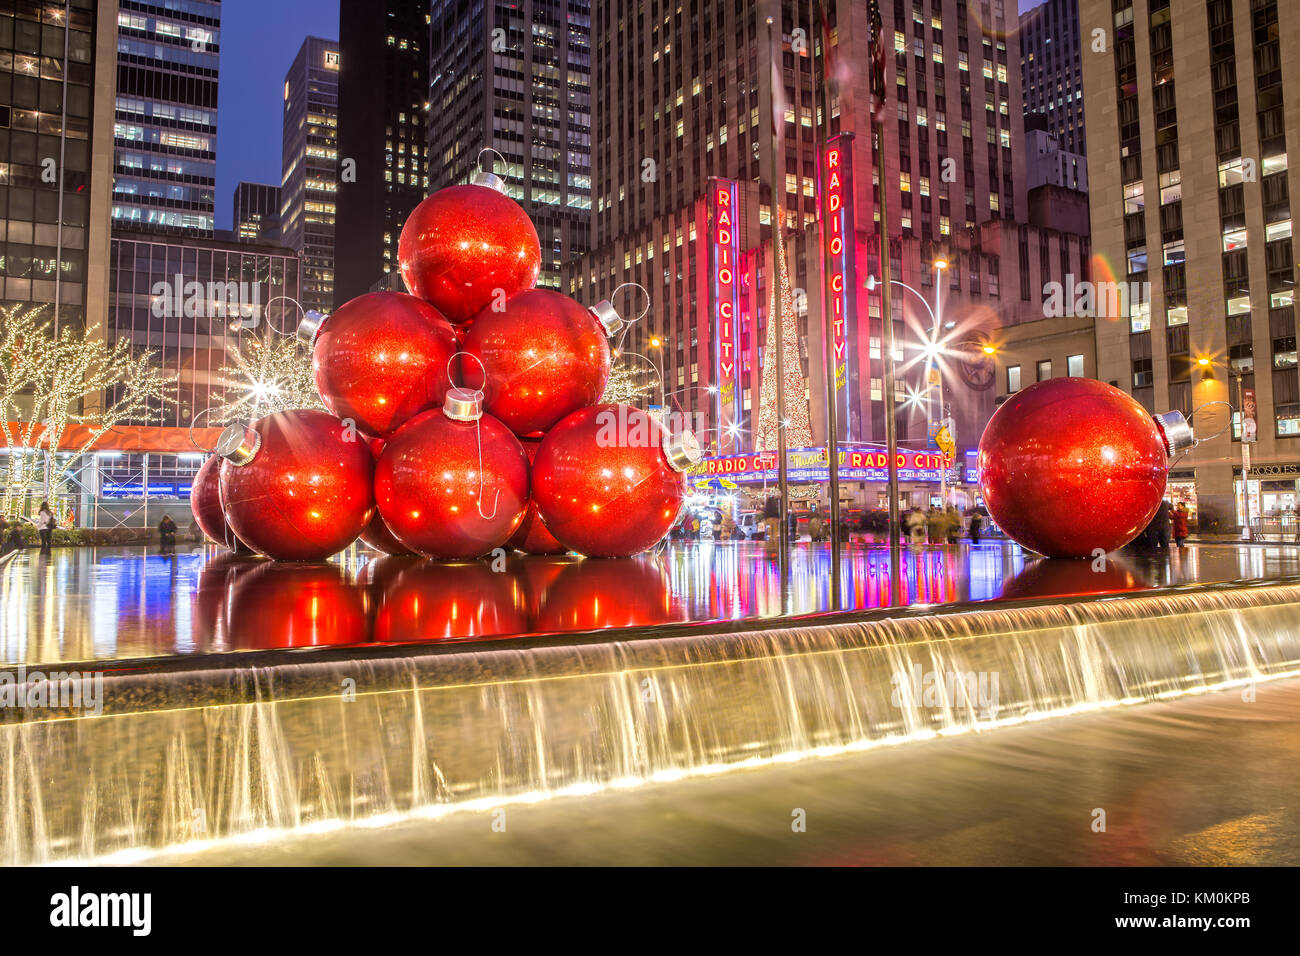 Décoration de Noël à Manhattan, New York City Photo Stock